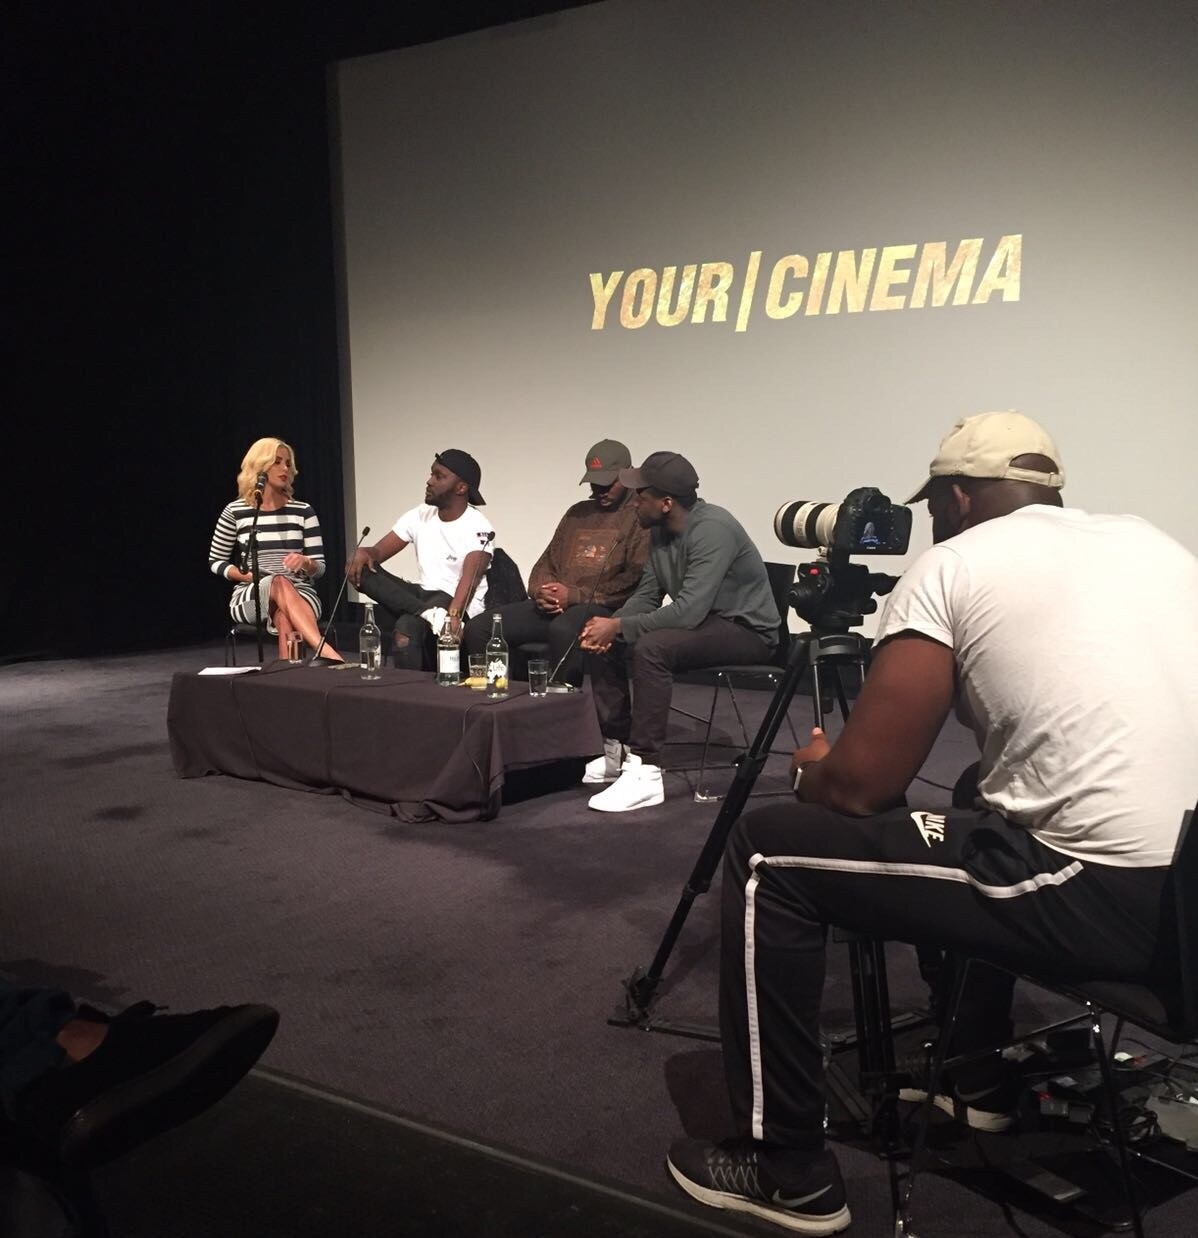 Shanie Hosts The #YourCinema Live Discussion / Q&A @The BFI…